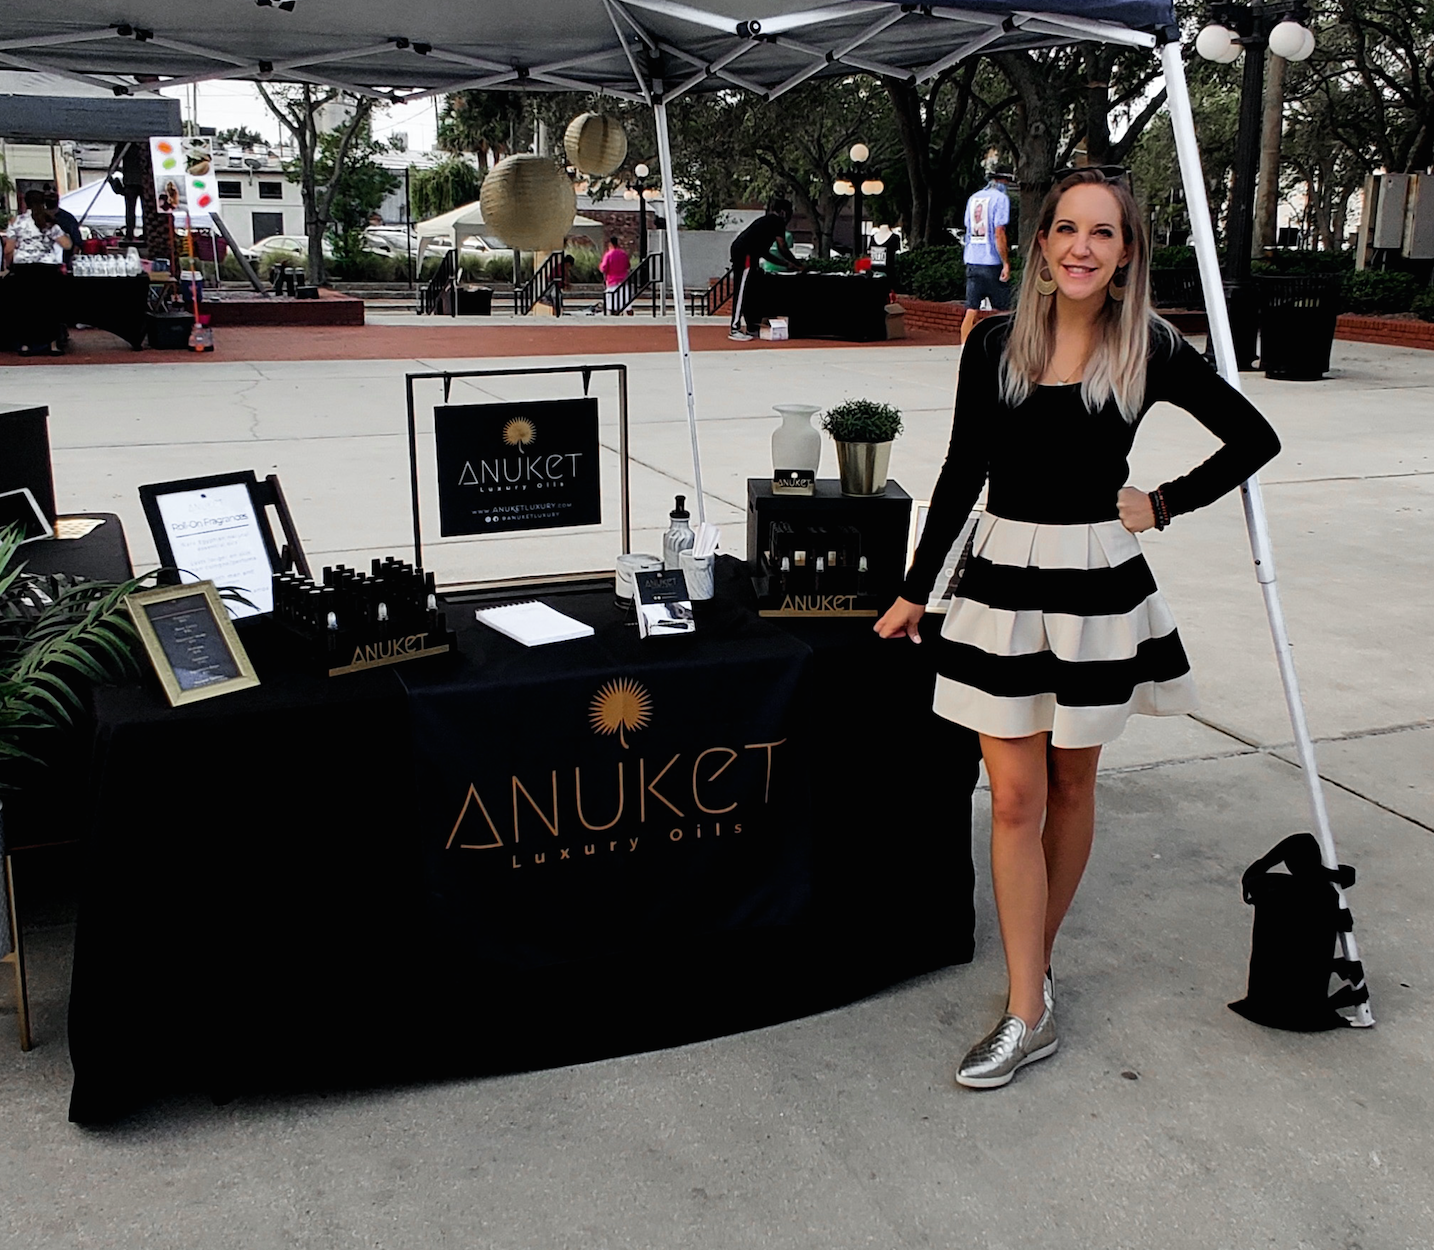 Ashlee Dozier at pop up event with table of Anuket Luxury Apothecary products